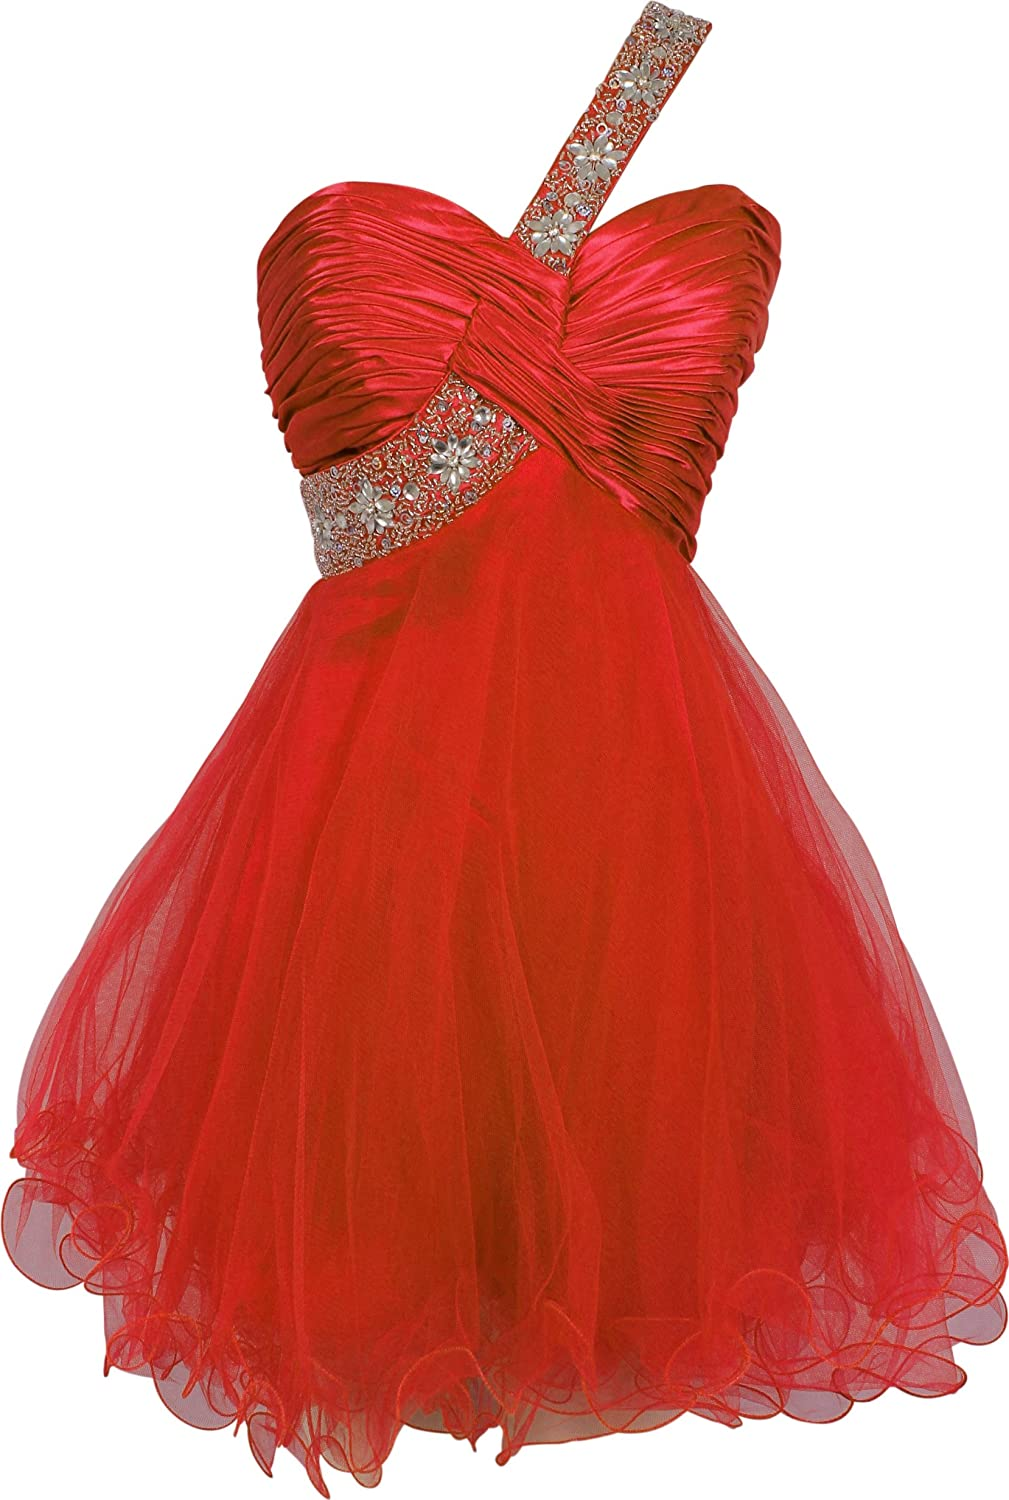 Beaded OneShoulder Mesh Party Short Prom Homecoming Dress